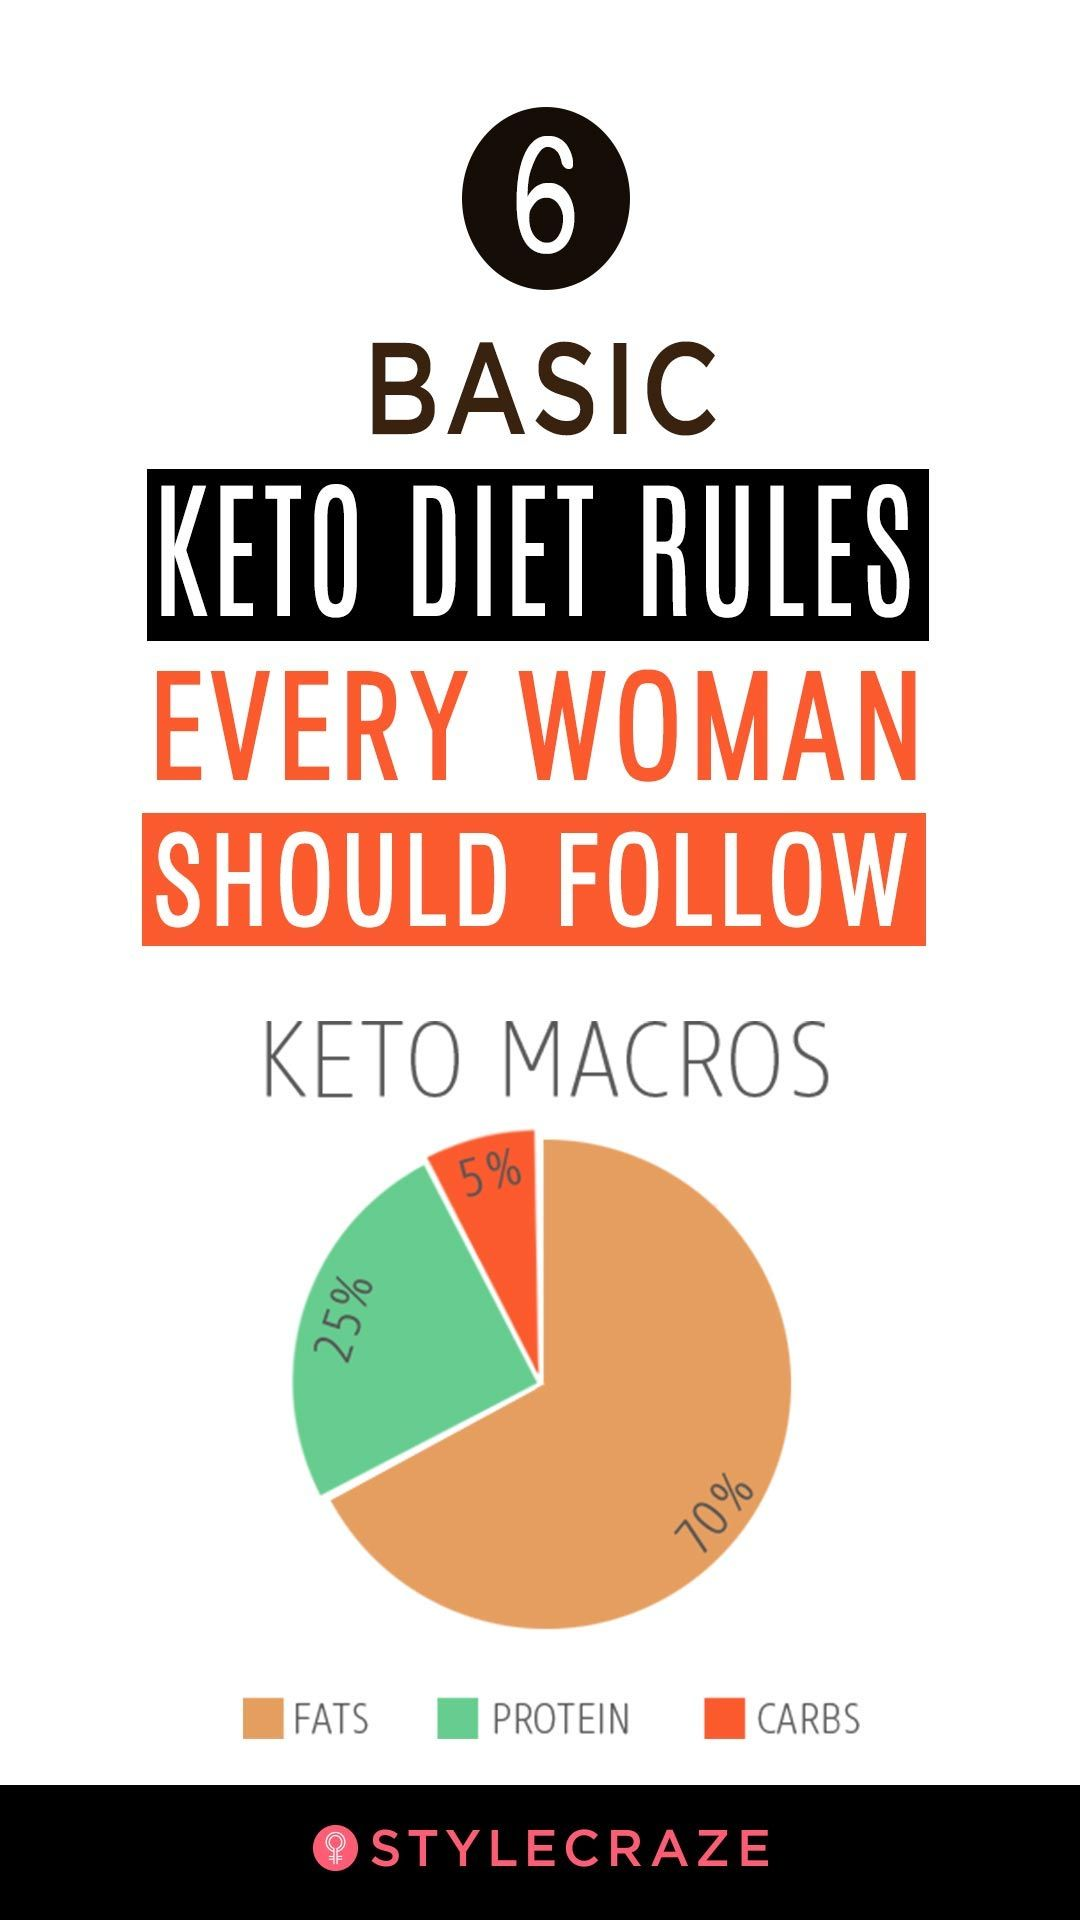 6 Basic Keto Diet Rules Every Woman Should Follow Keto Diet Keto Best Keto Diet